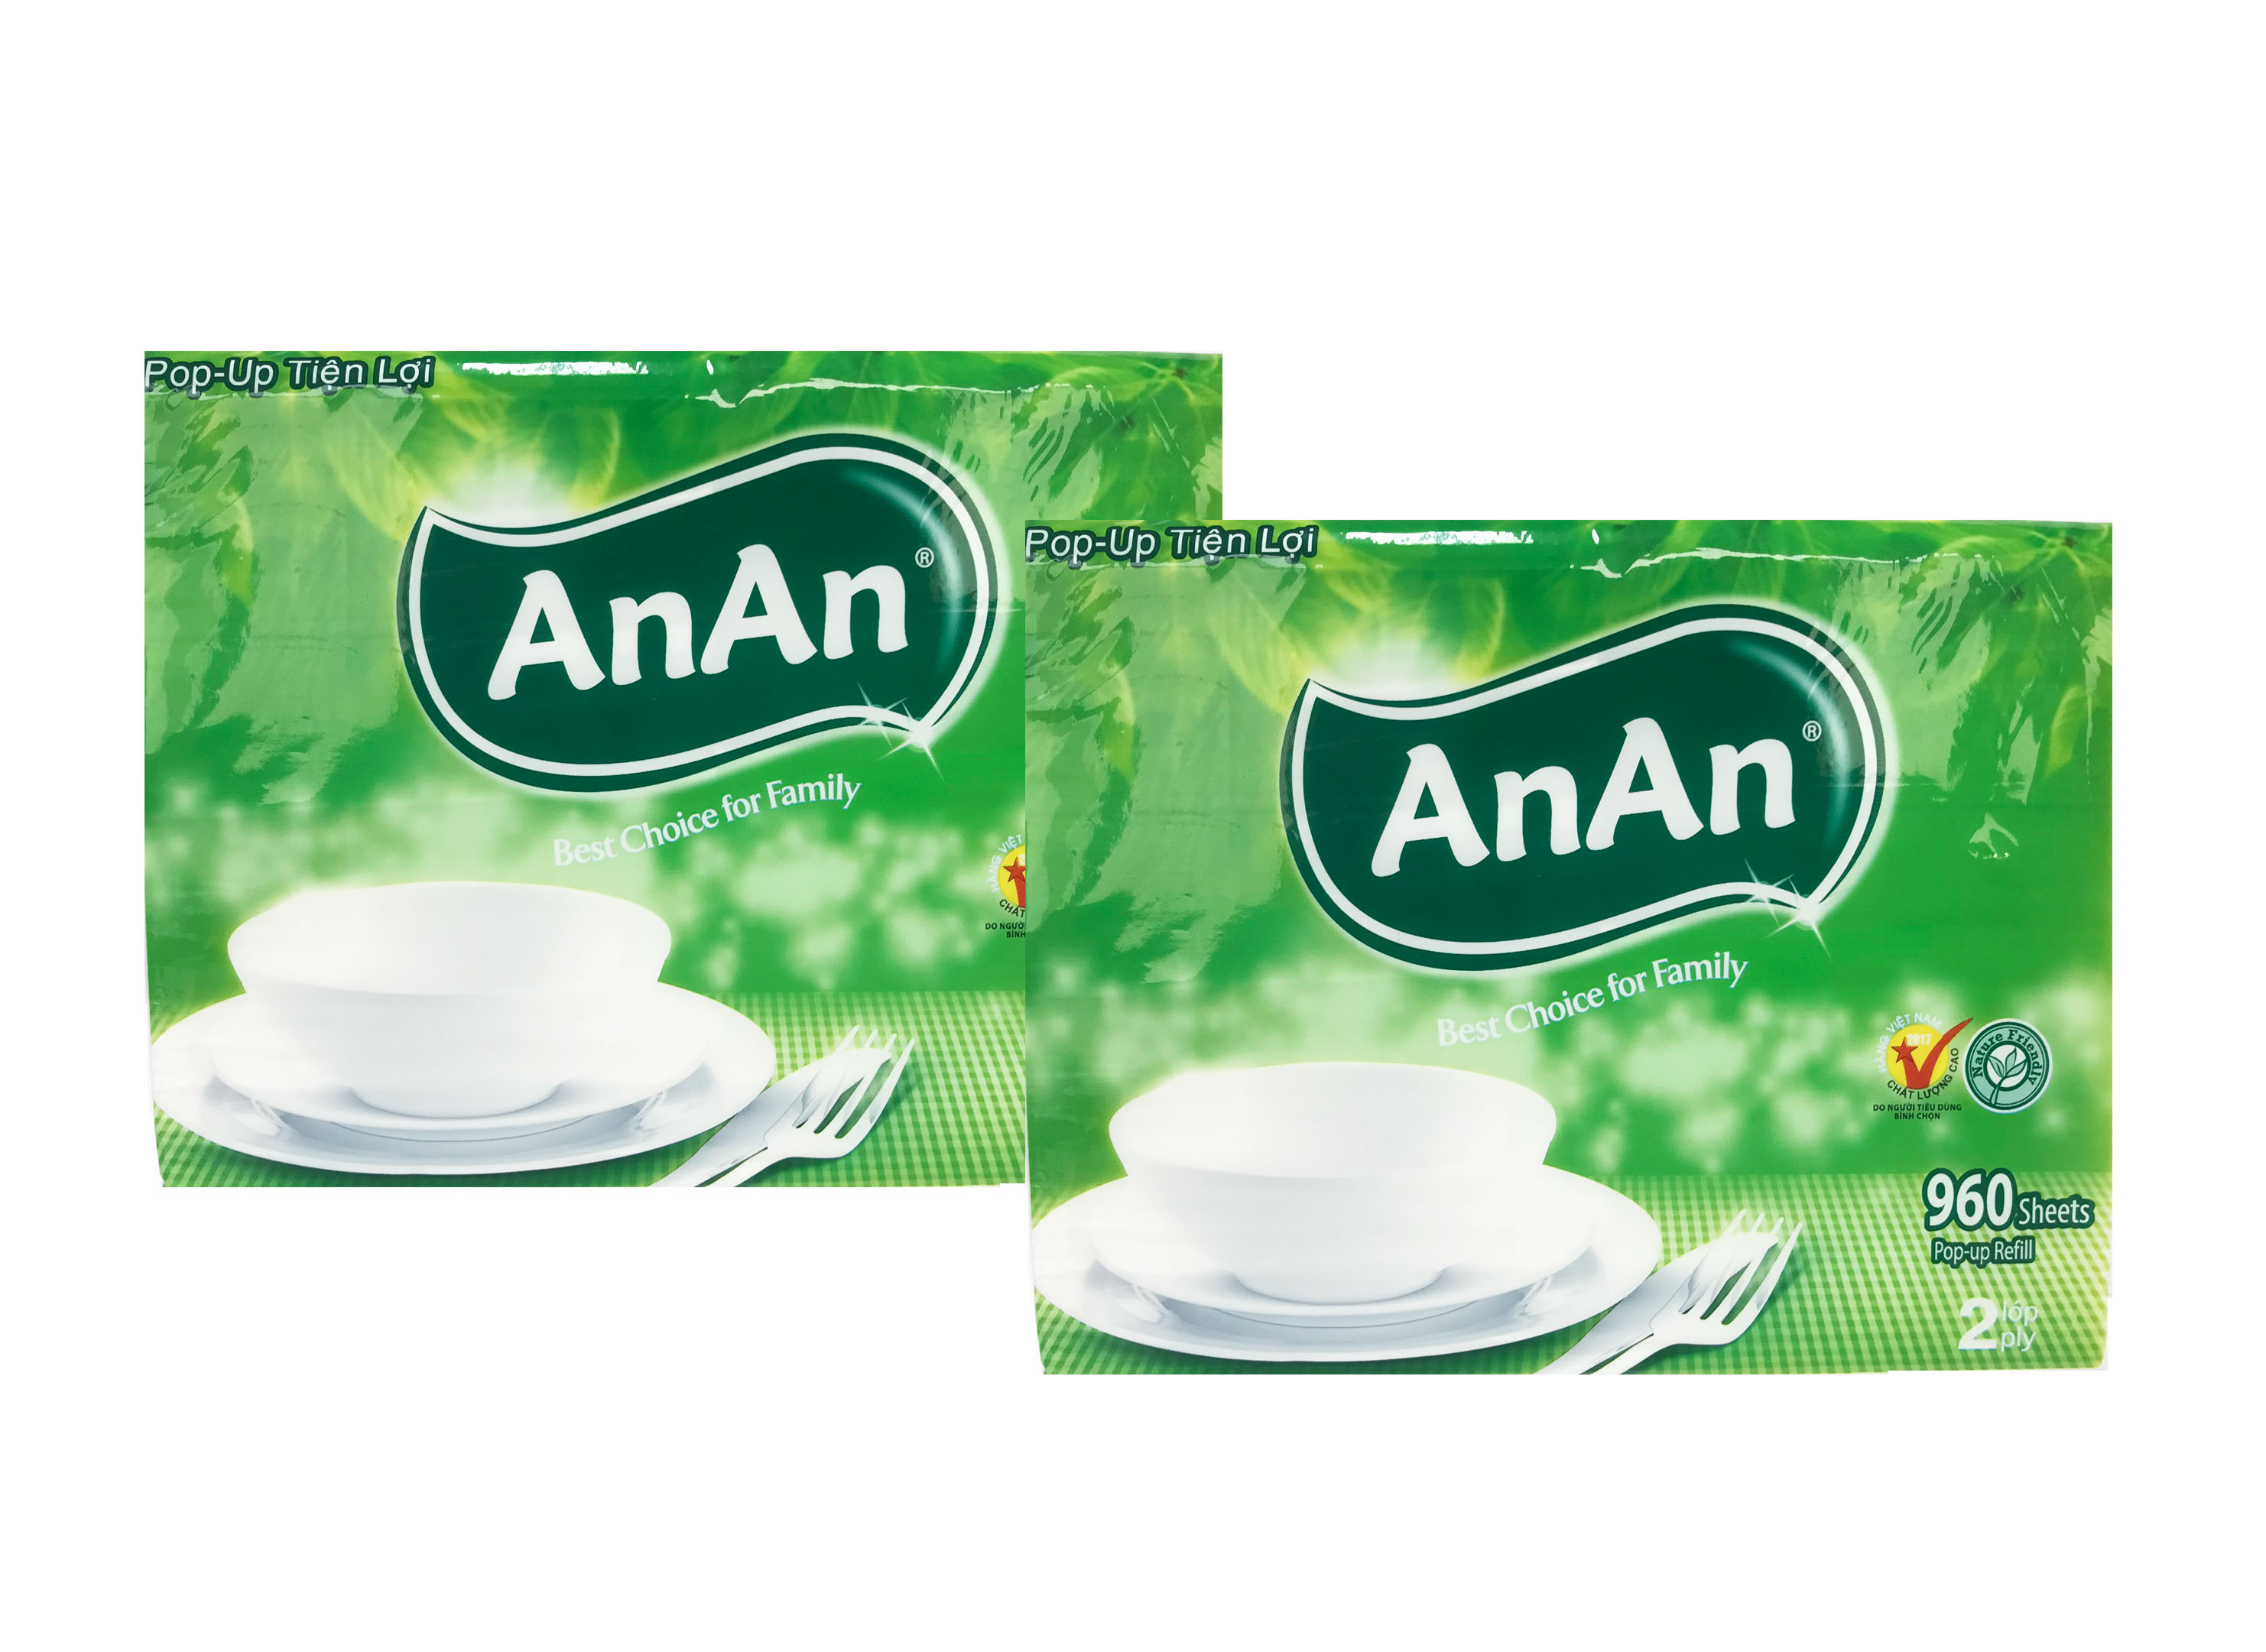 AnAn Pop-Up Refill